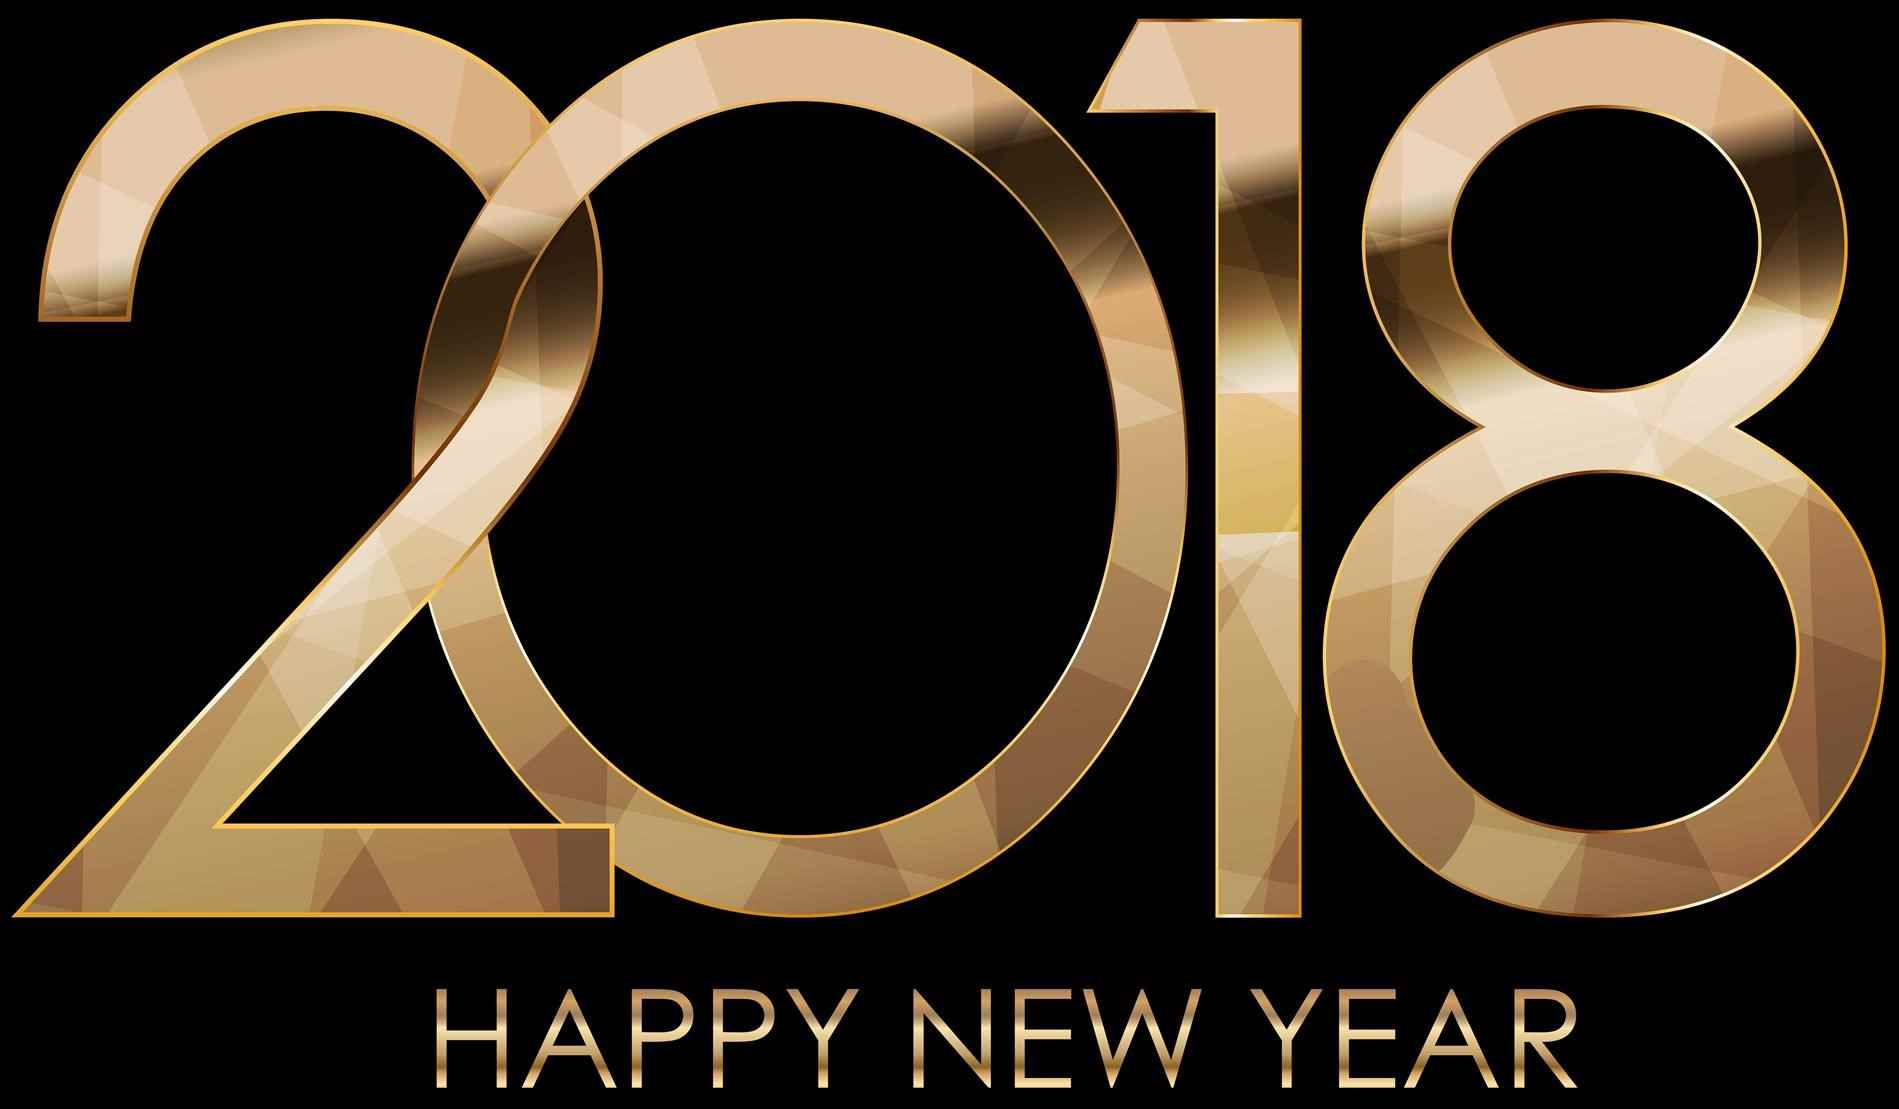 collection images images happy new year 2018 png status messages status happy  new year 2018 png - Happy New Year 2018 PNG